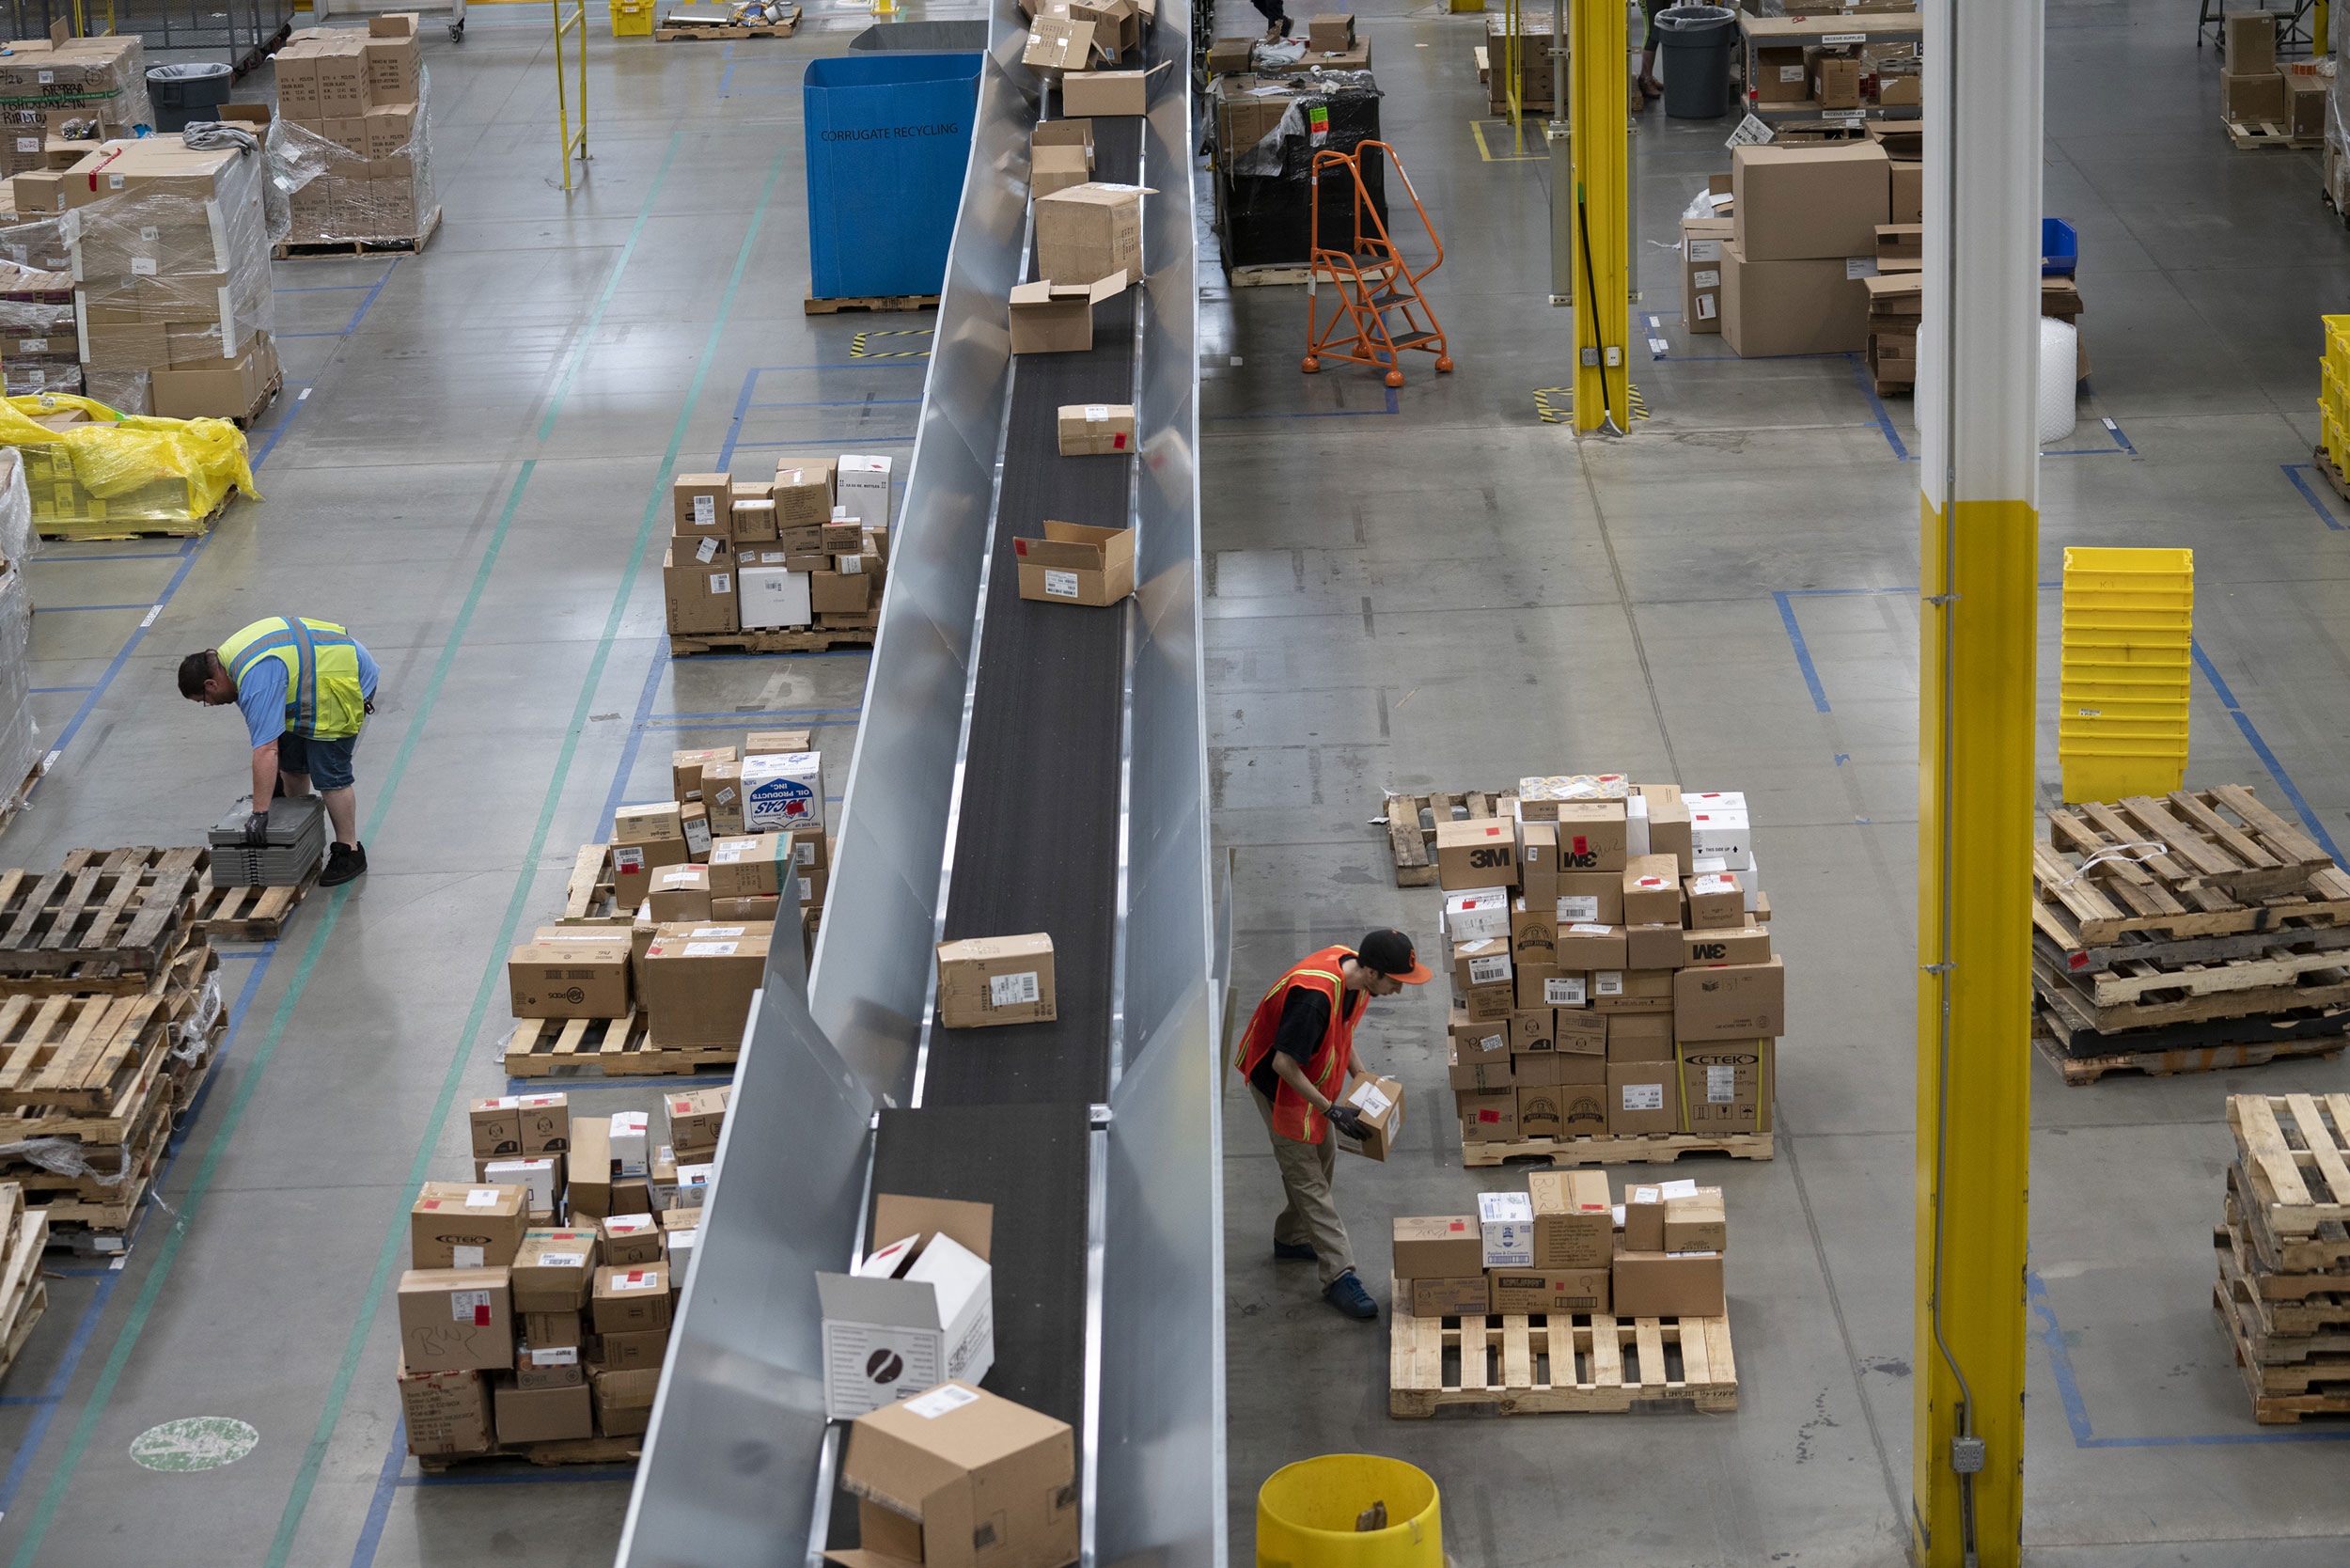 Employees work at the Amazon fulfillment center in Baltimore, Maryland.